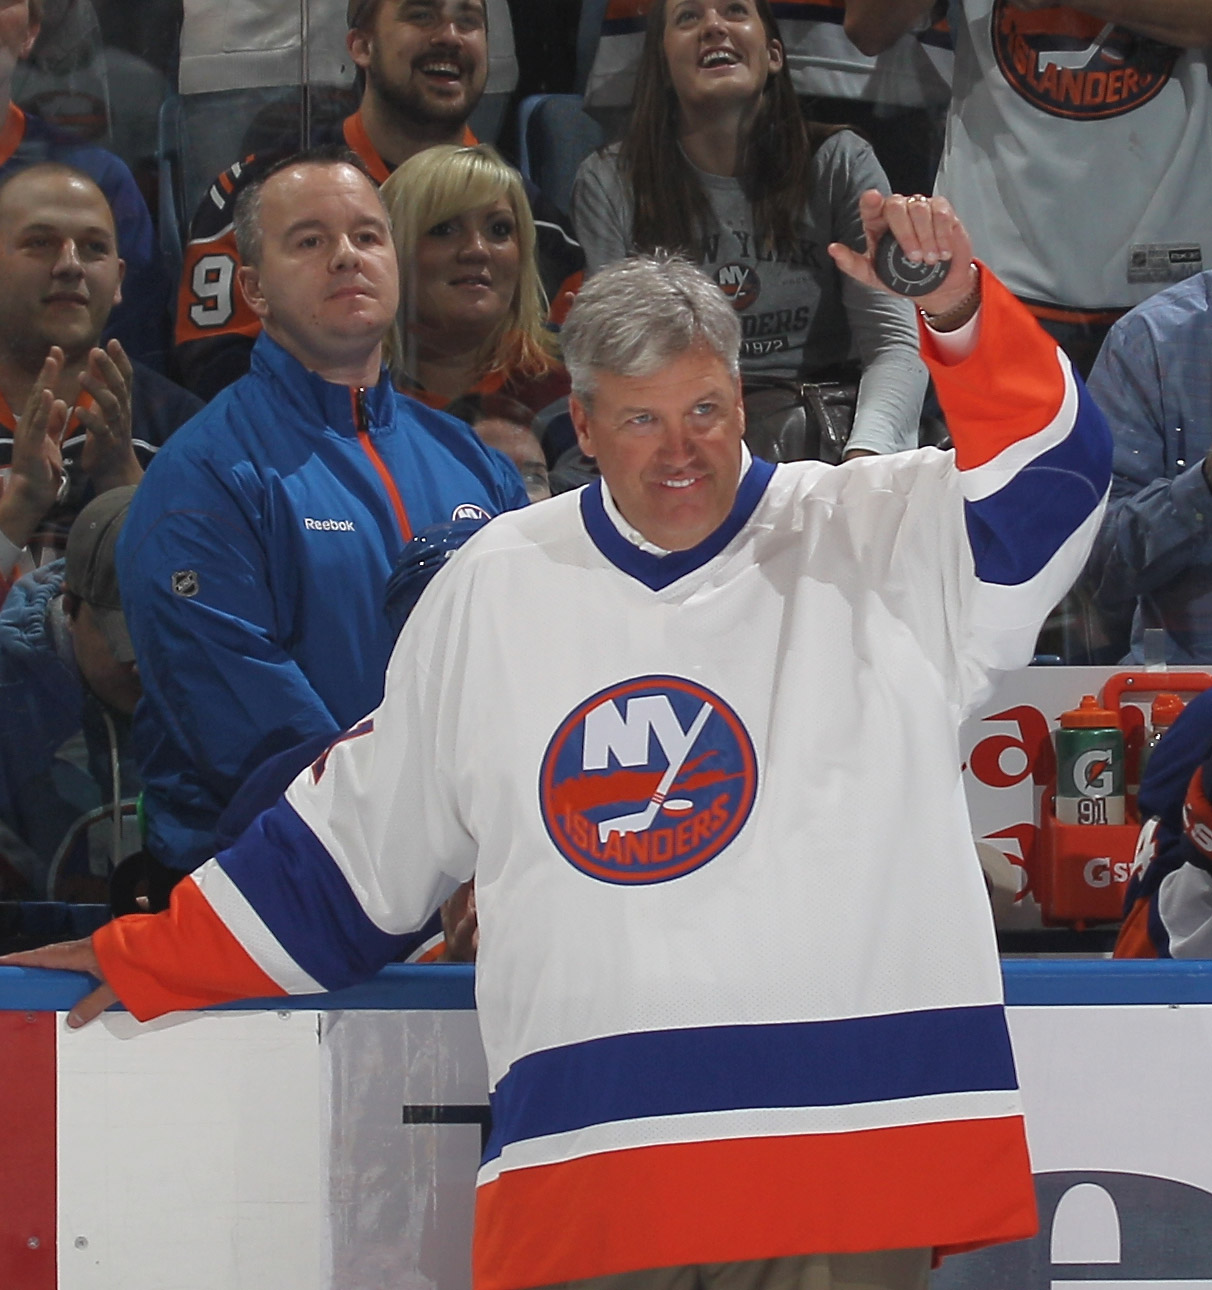 UNIONDALE, NY - OCTOBER 09:  New York Jets coach Rex Ryan gets ready to drop the ceremonial puck between Brenden Morrow #10 of the Dallas Stars and Doug Weight #93 of the New York Islanders prior to the Islanders home opener at the Nassau Coliseum on Octo